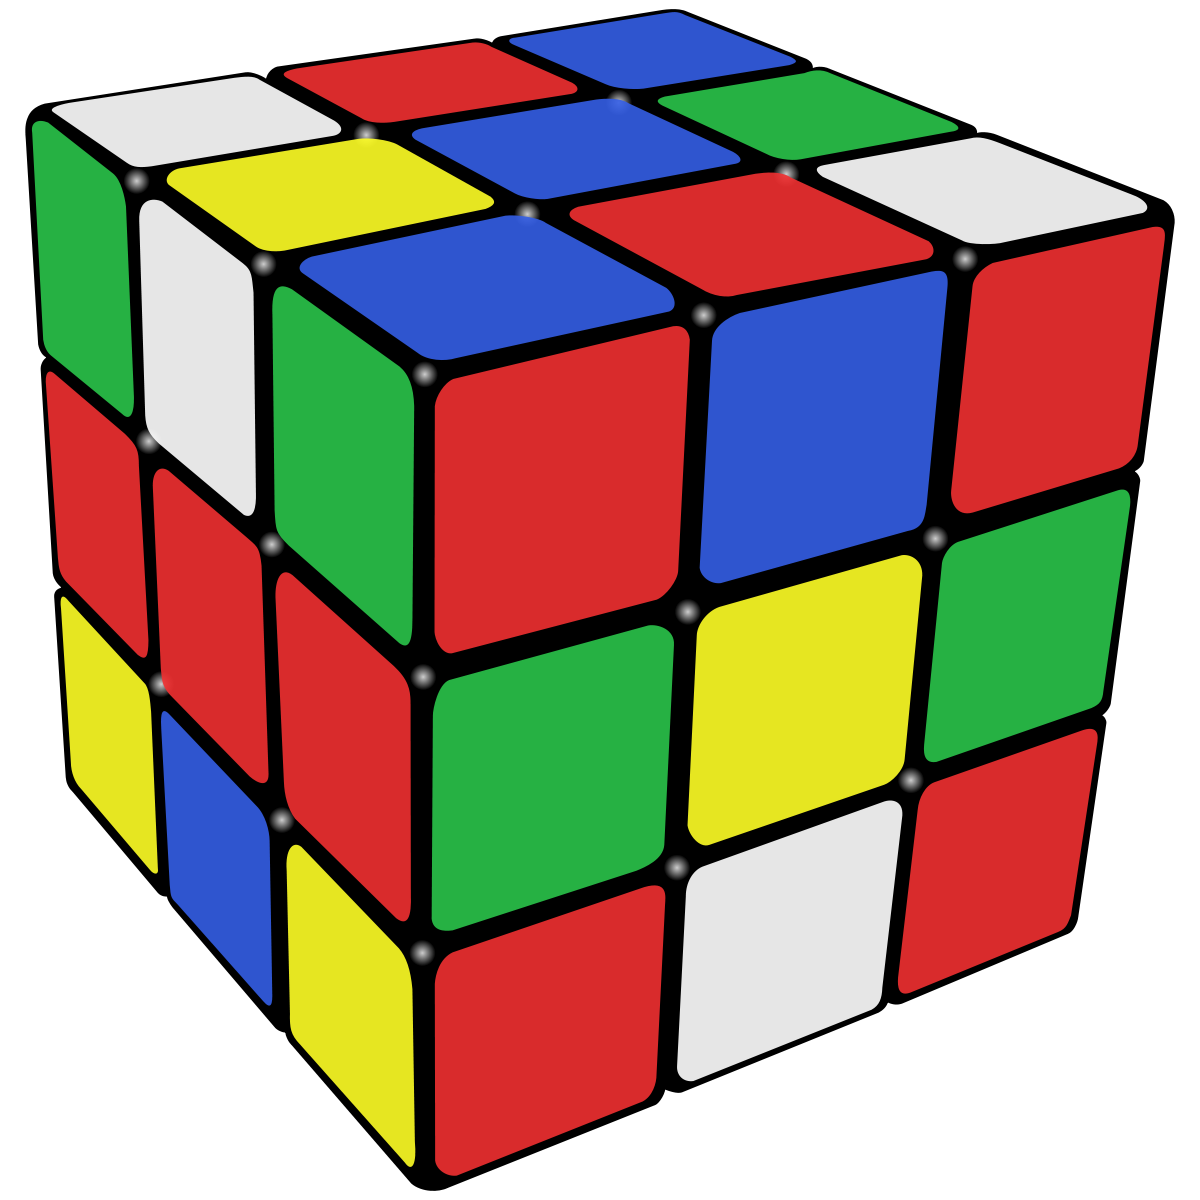 Cube clipart link Optimal Cube for Rubik's solutions